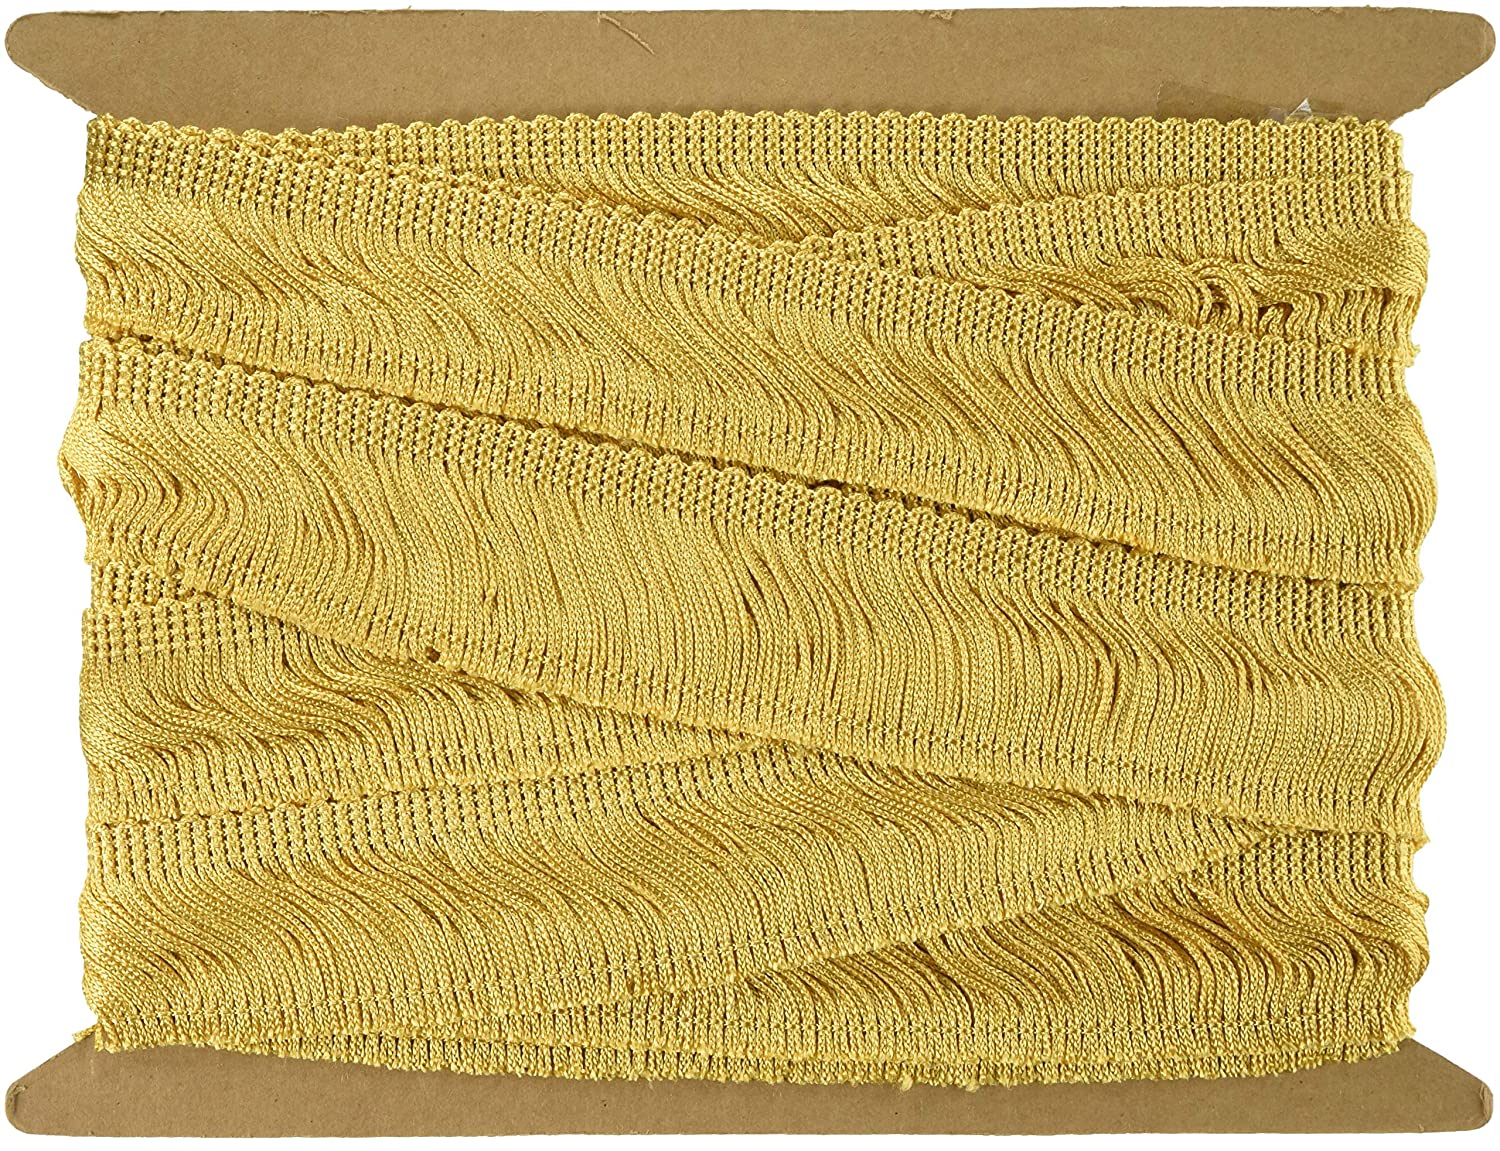 Antique Gold 2 x 9 yd Decorative Trimmings 100/% Rayon Chainette Fringe